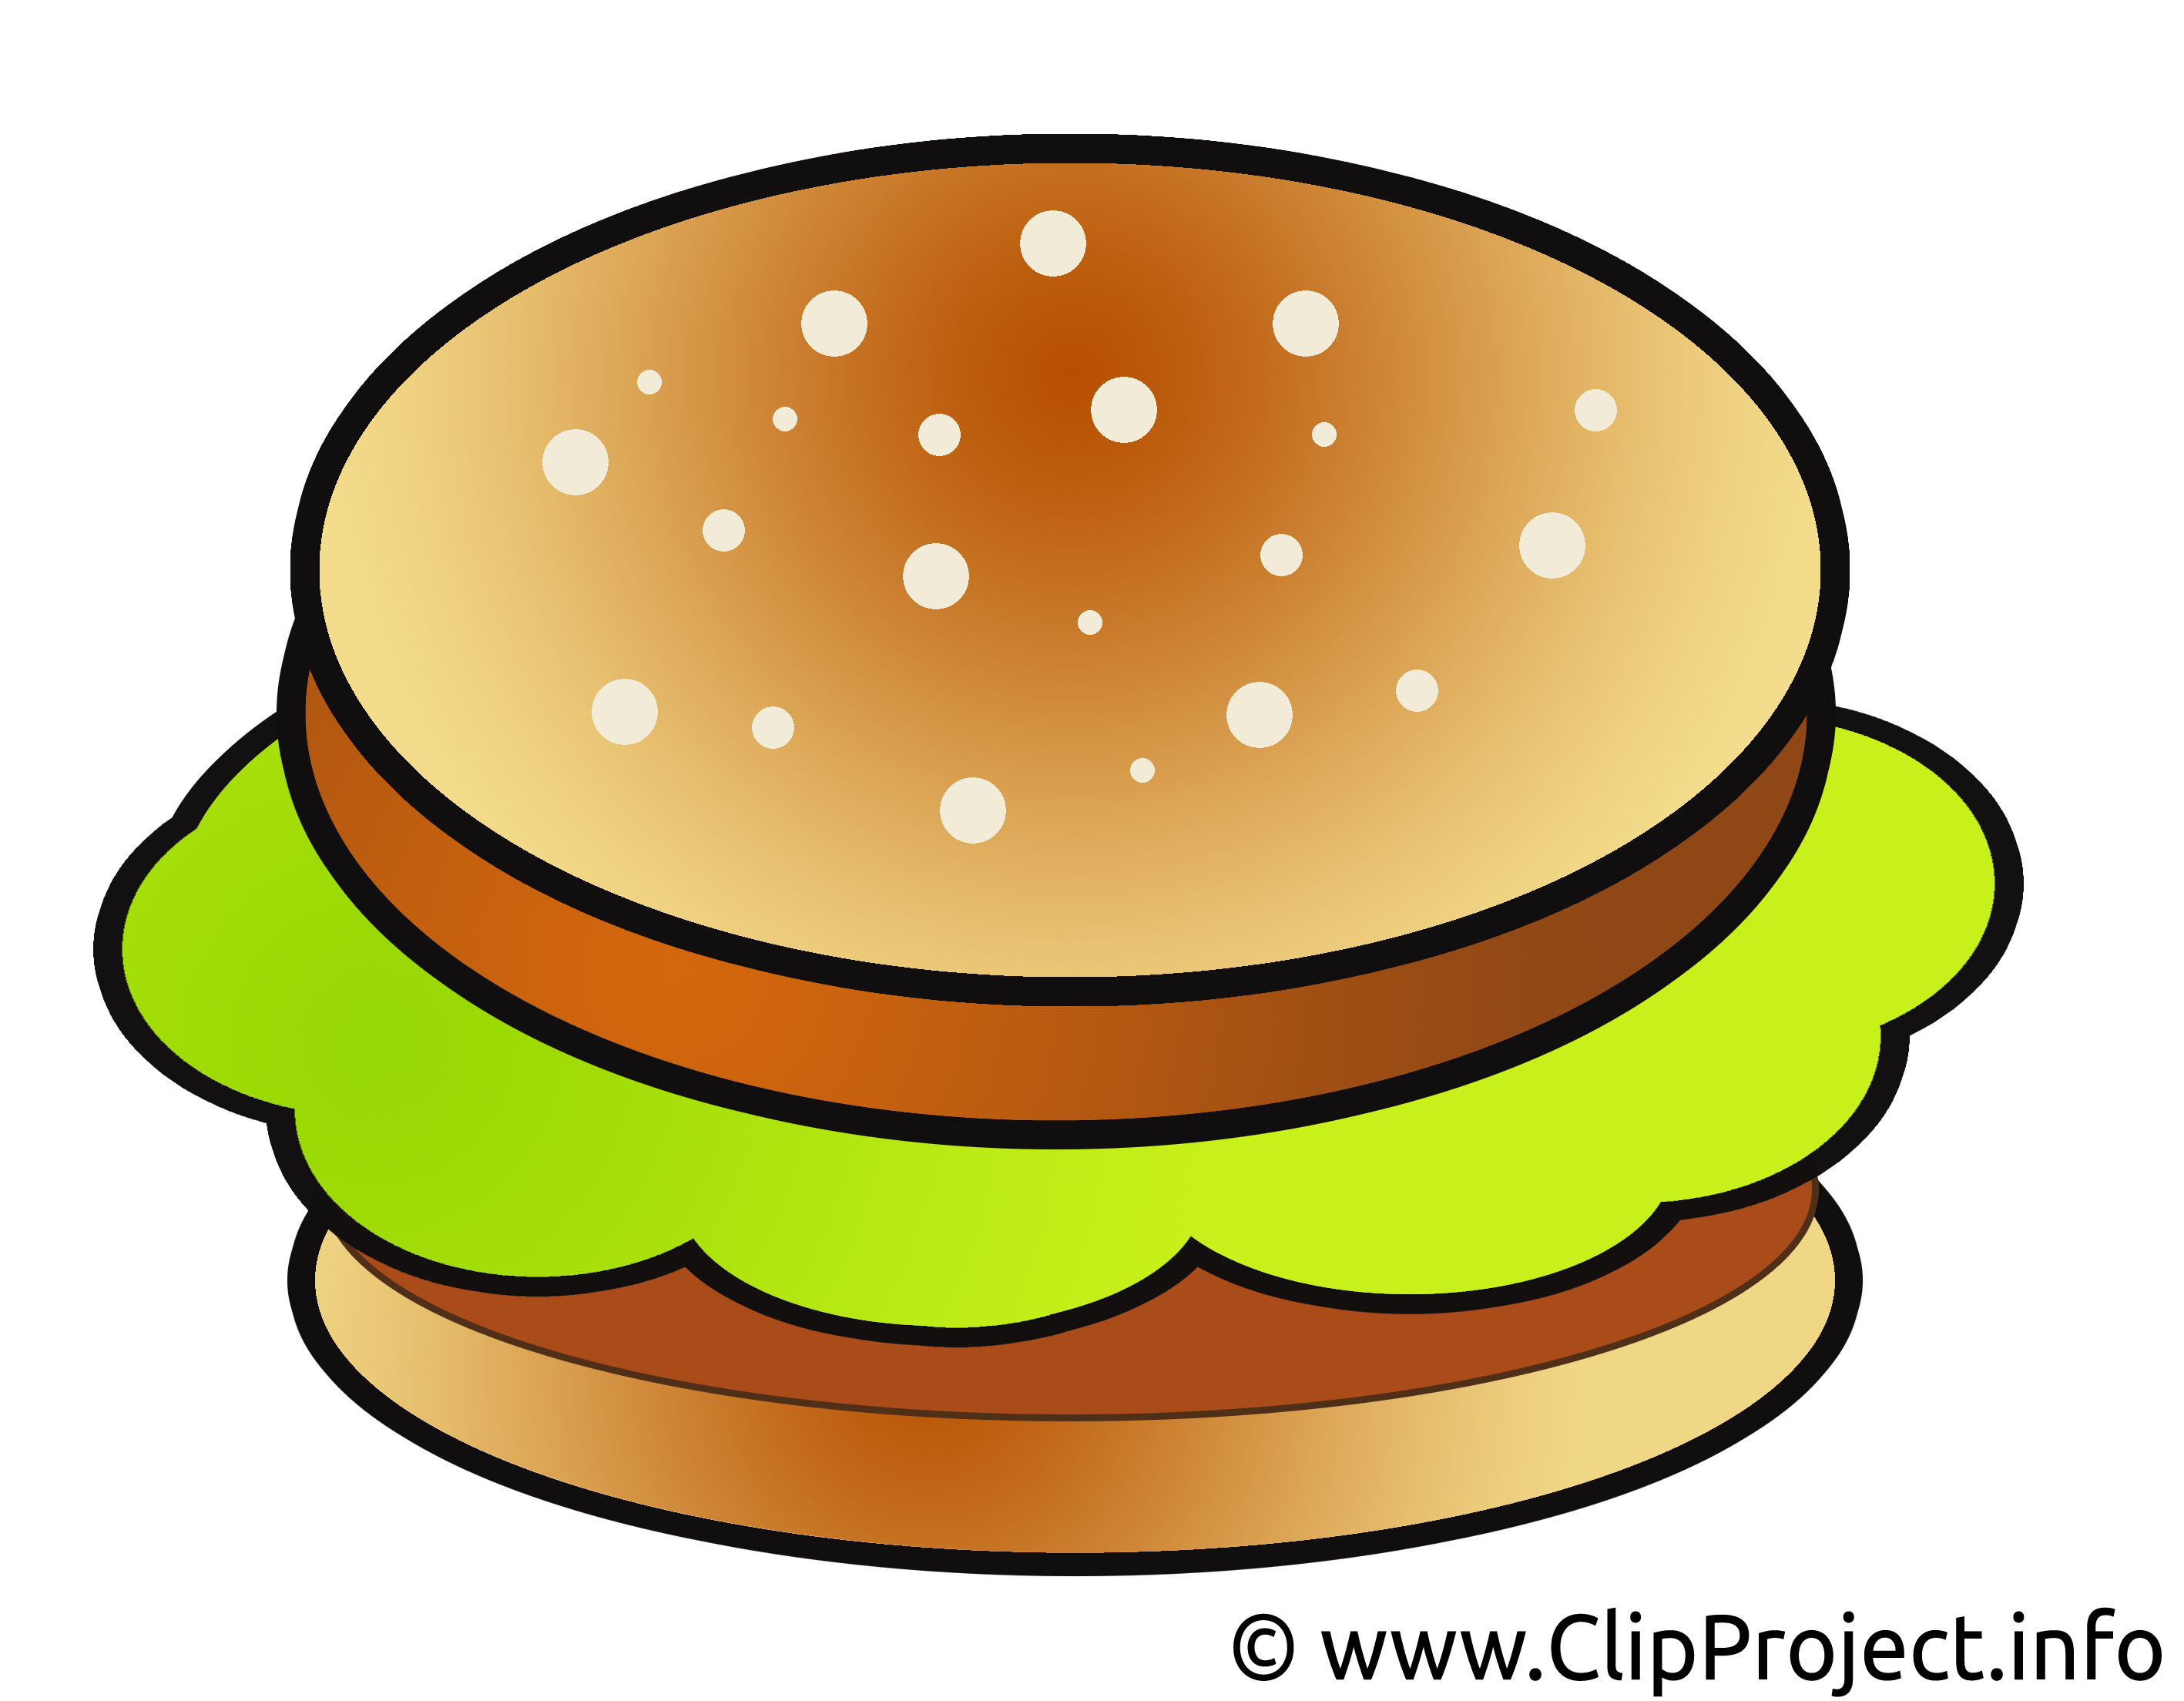 Essen clipart kostenlos graphic free stock Essen Bilder, Cliparts, Cartoons, Grafiken, Illustrationen, Gifs ... graphic free stock